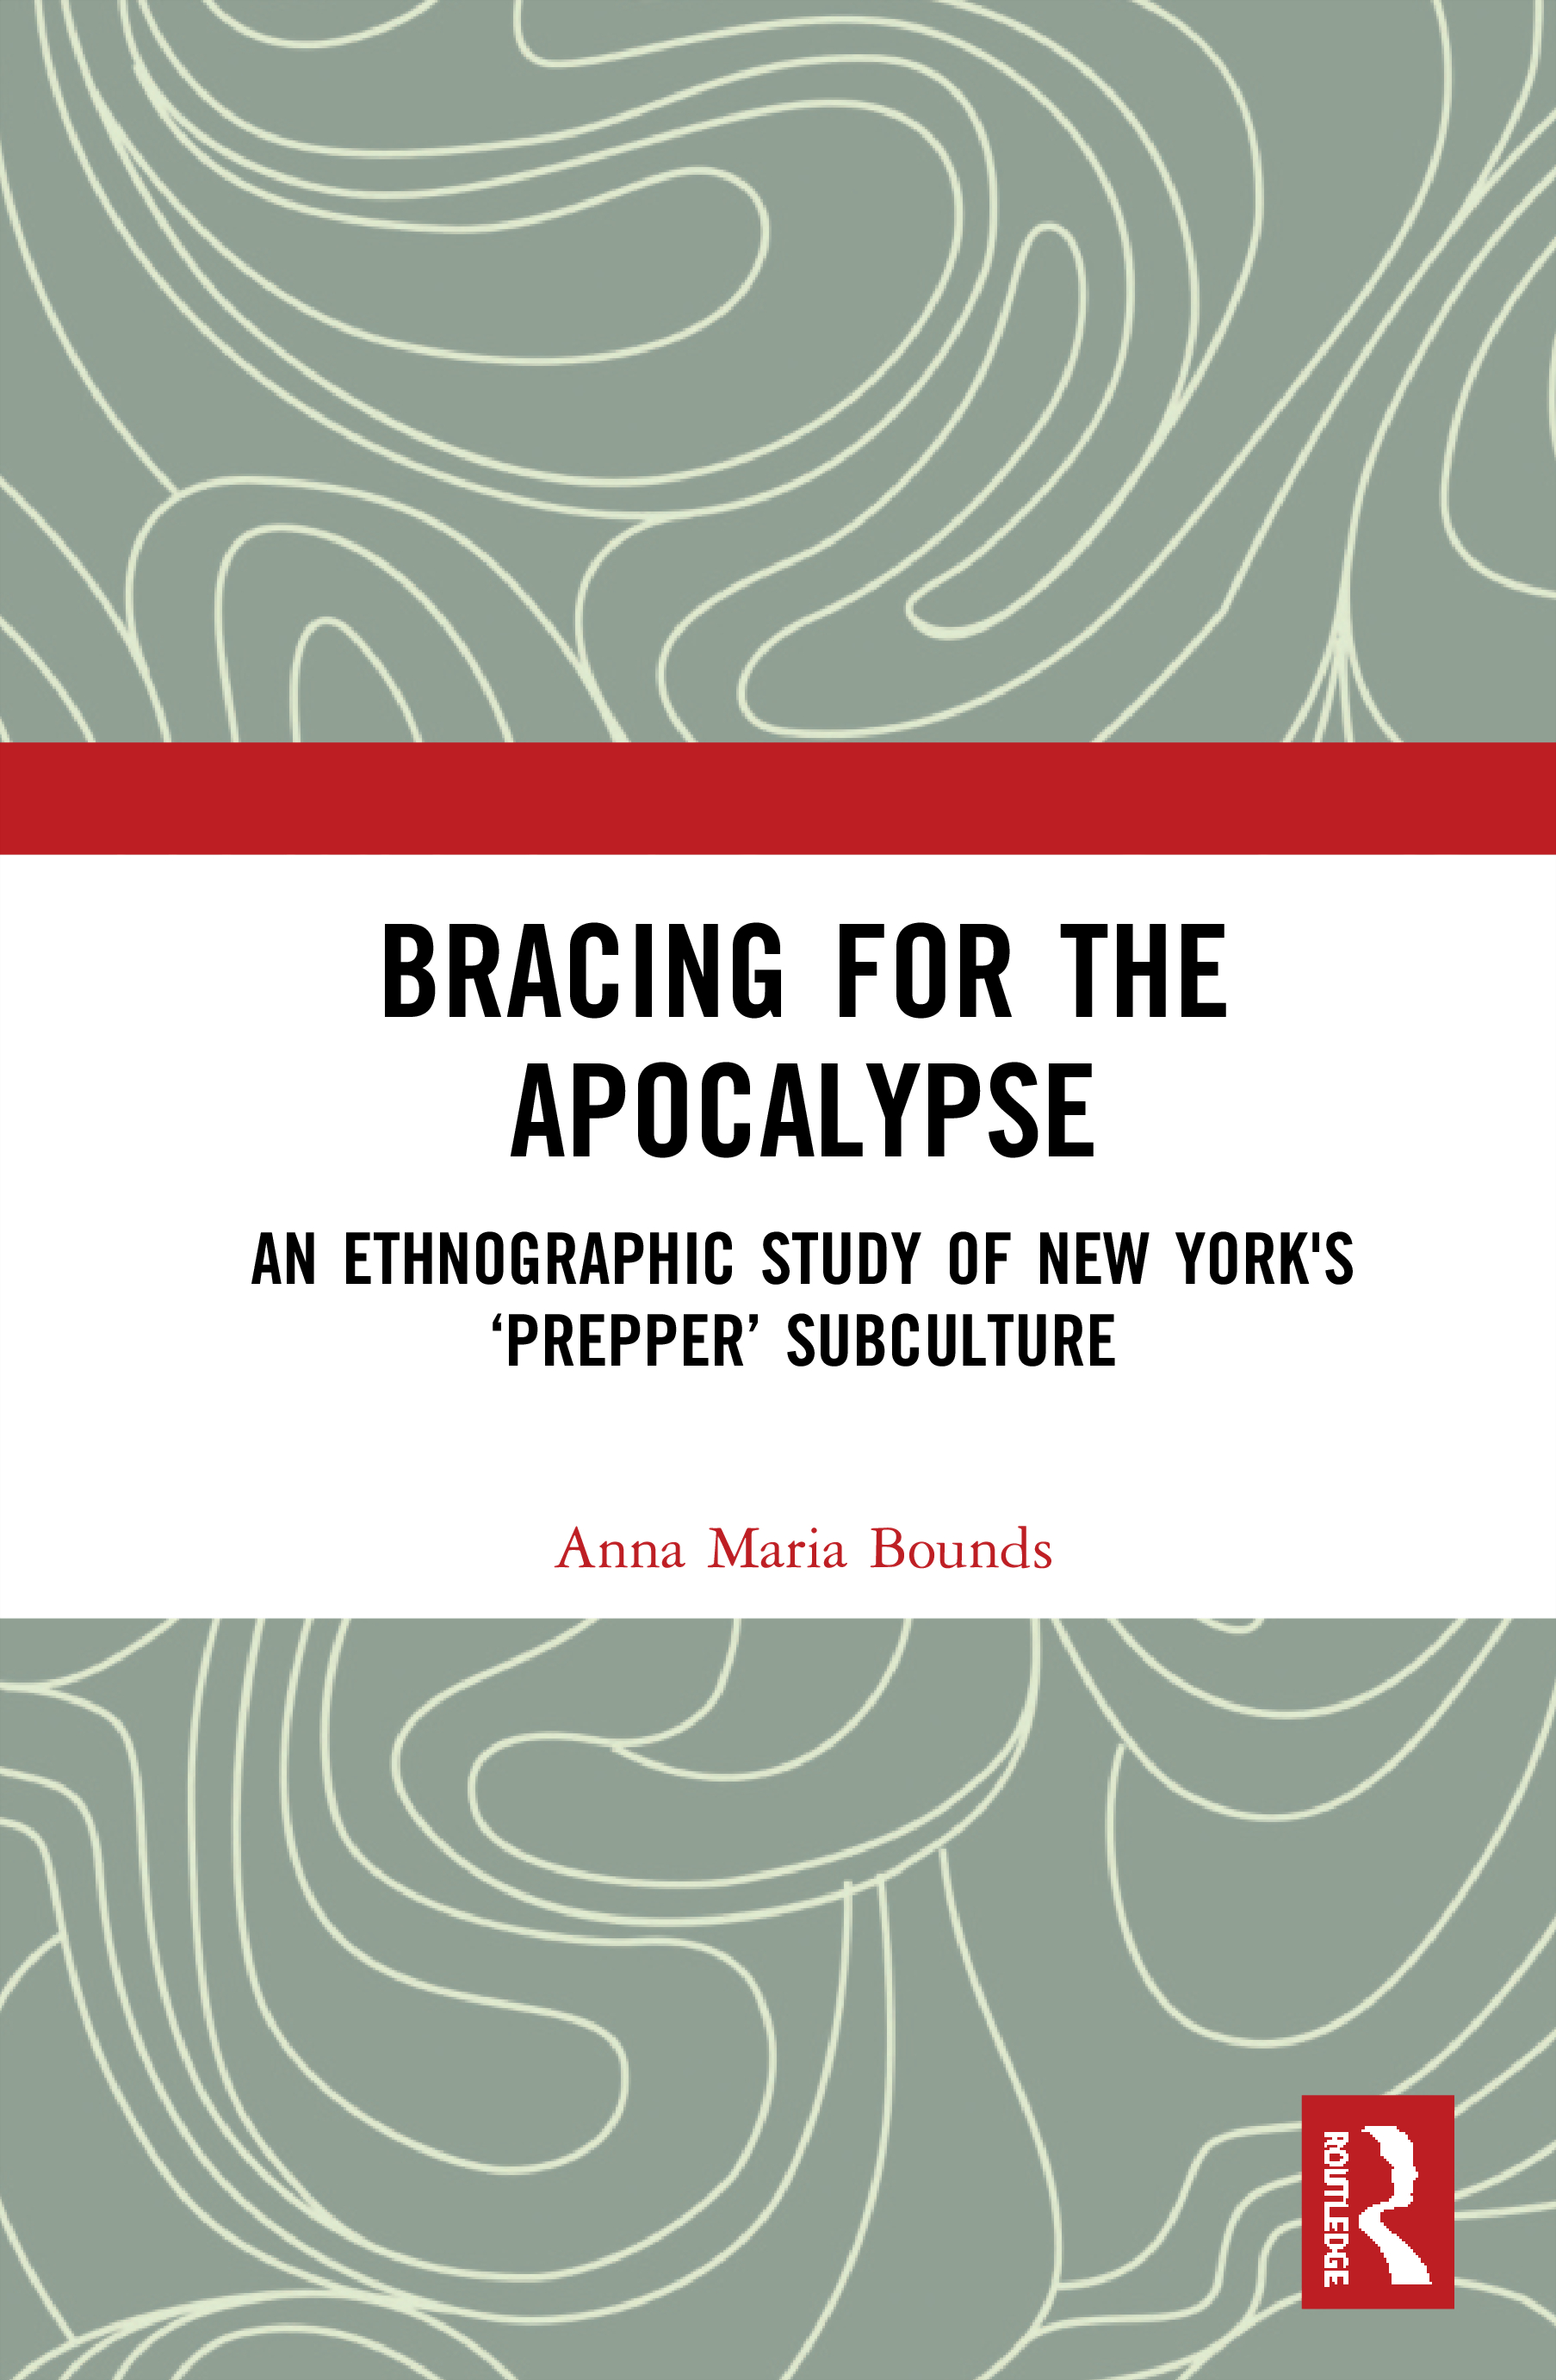 Bracing for the Apocalypse: An Ethnographic Study of New York's 'Prepper' Subculture book cover